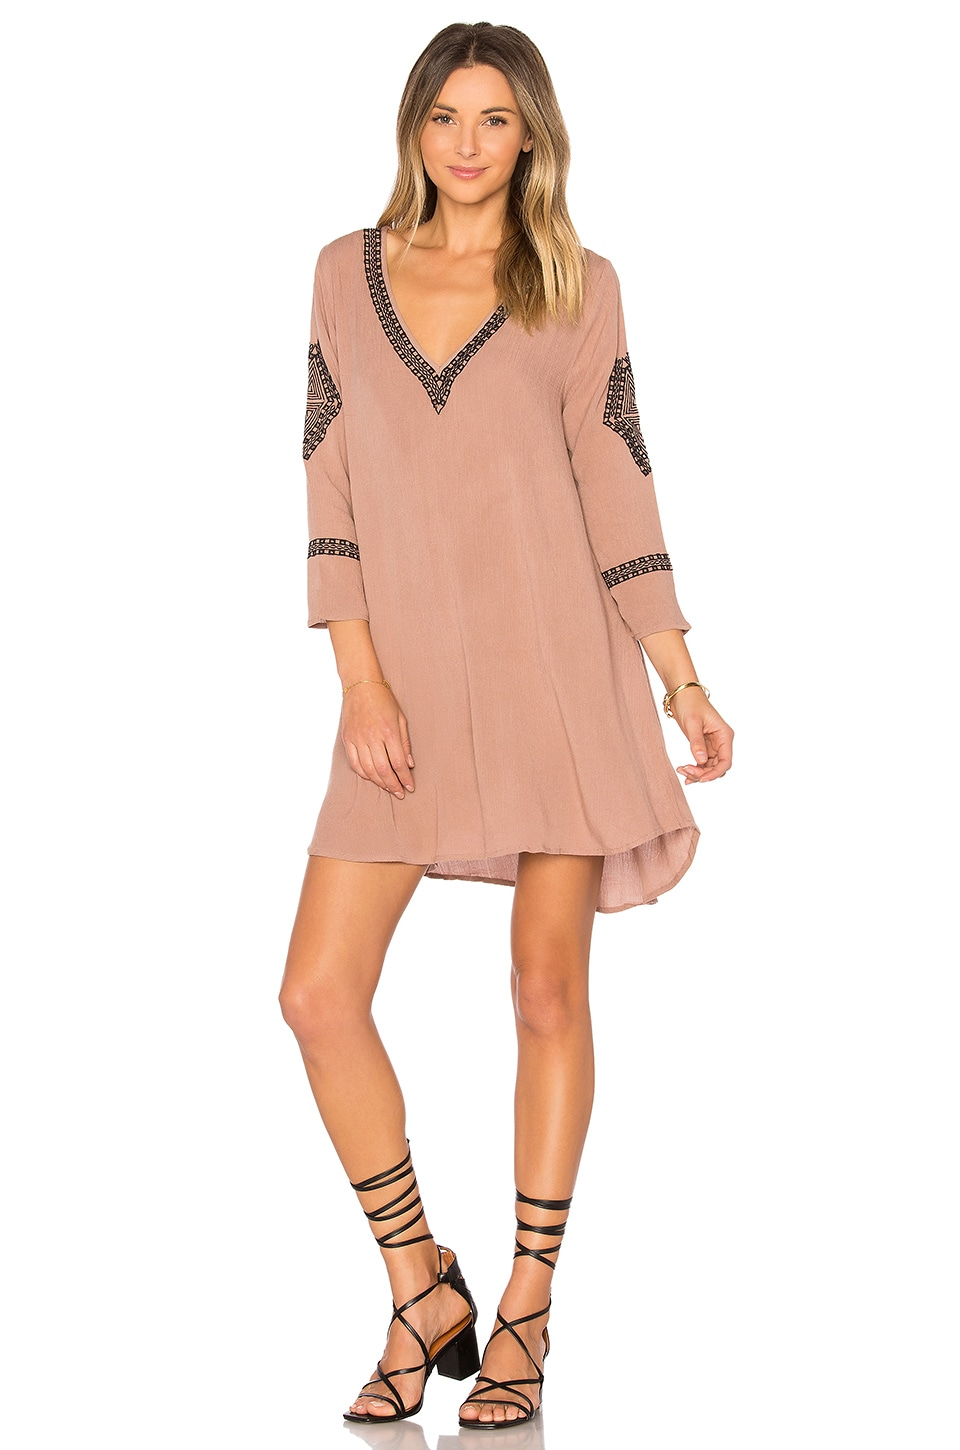 AMUSE SOCIETY Desert Sky Dress in Desert Taupe